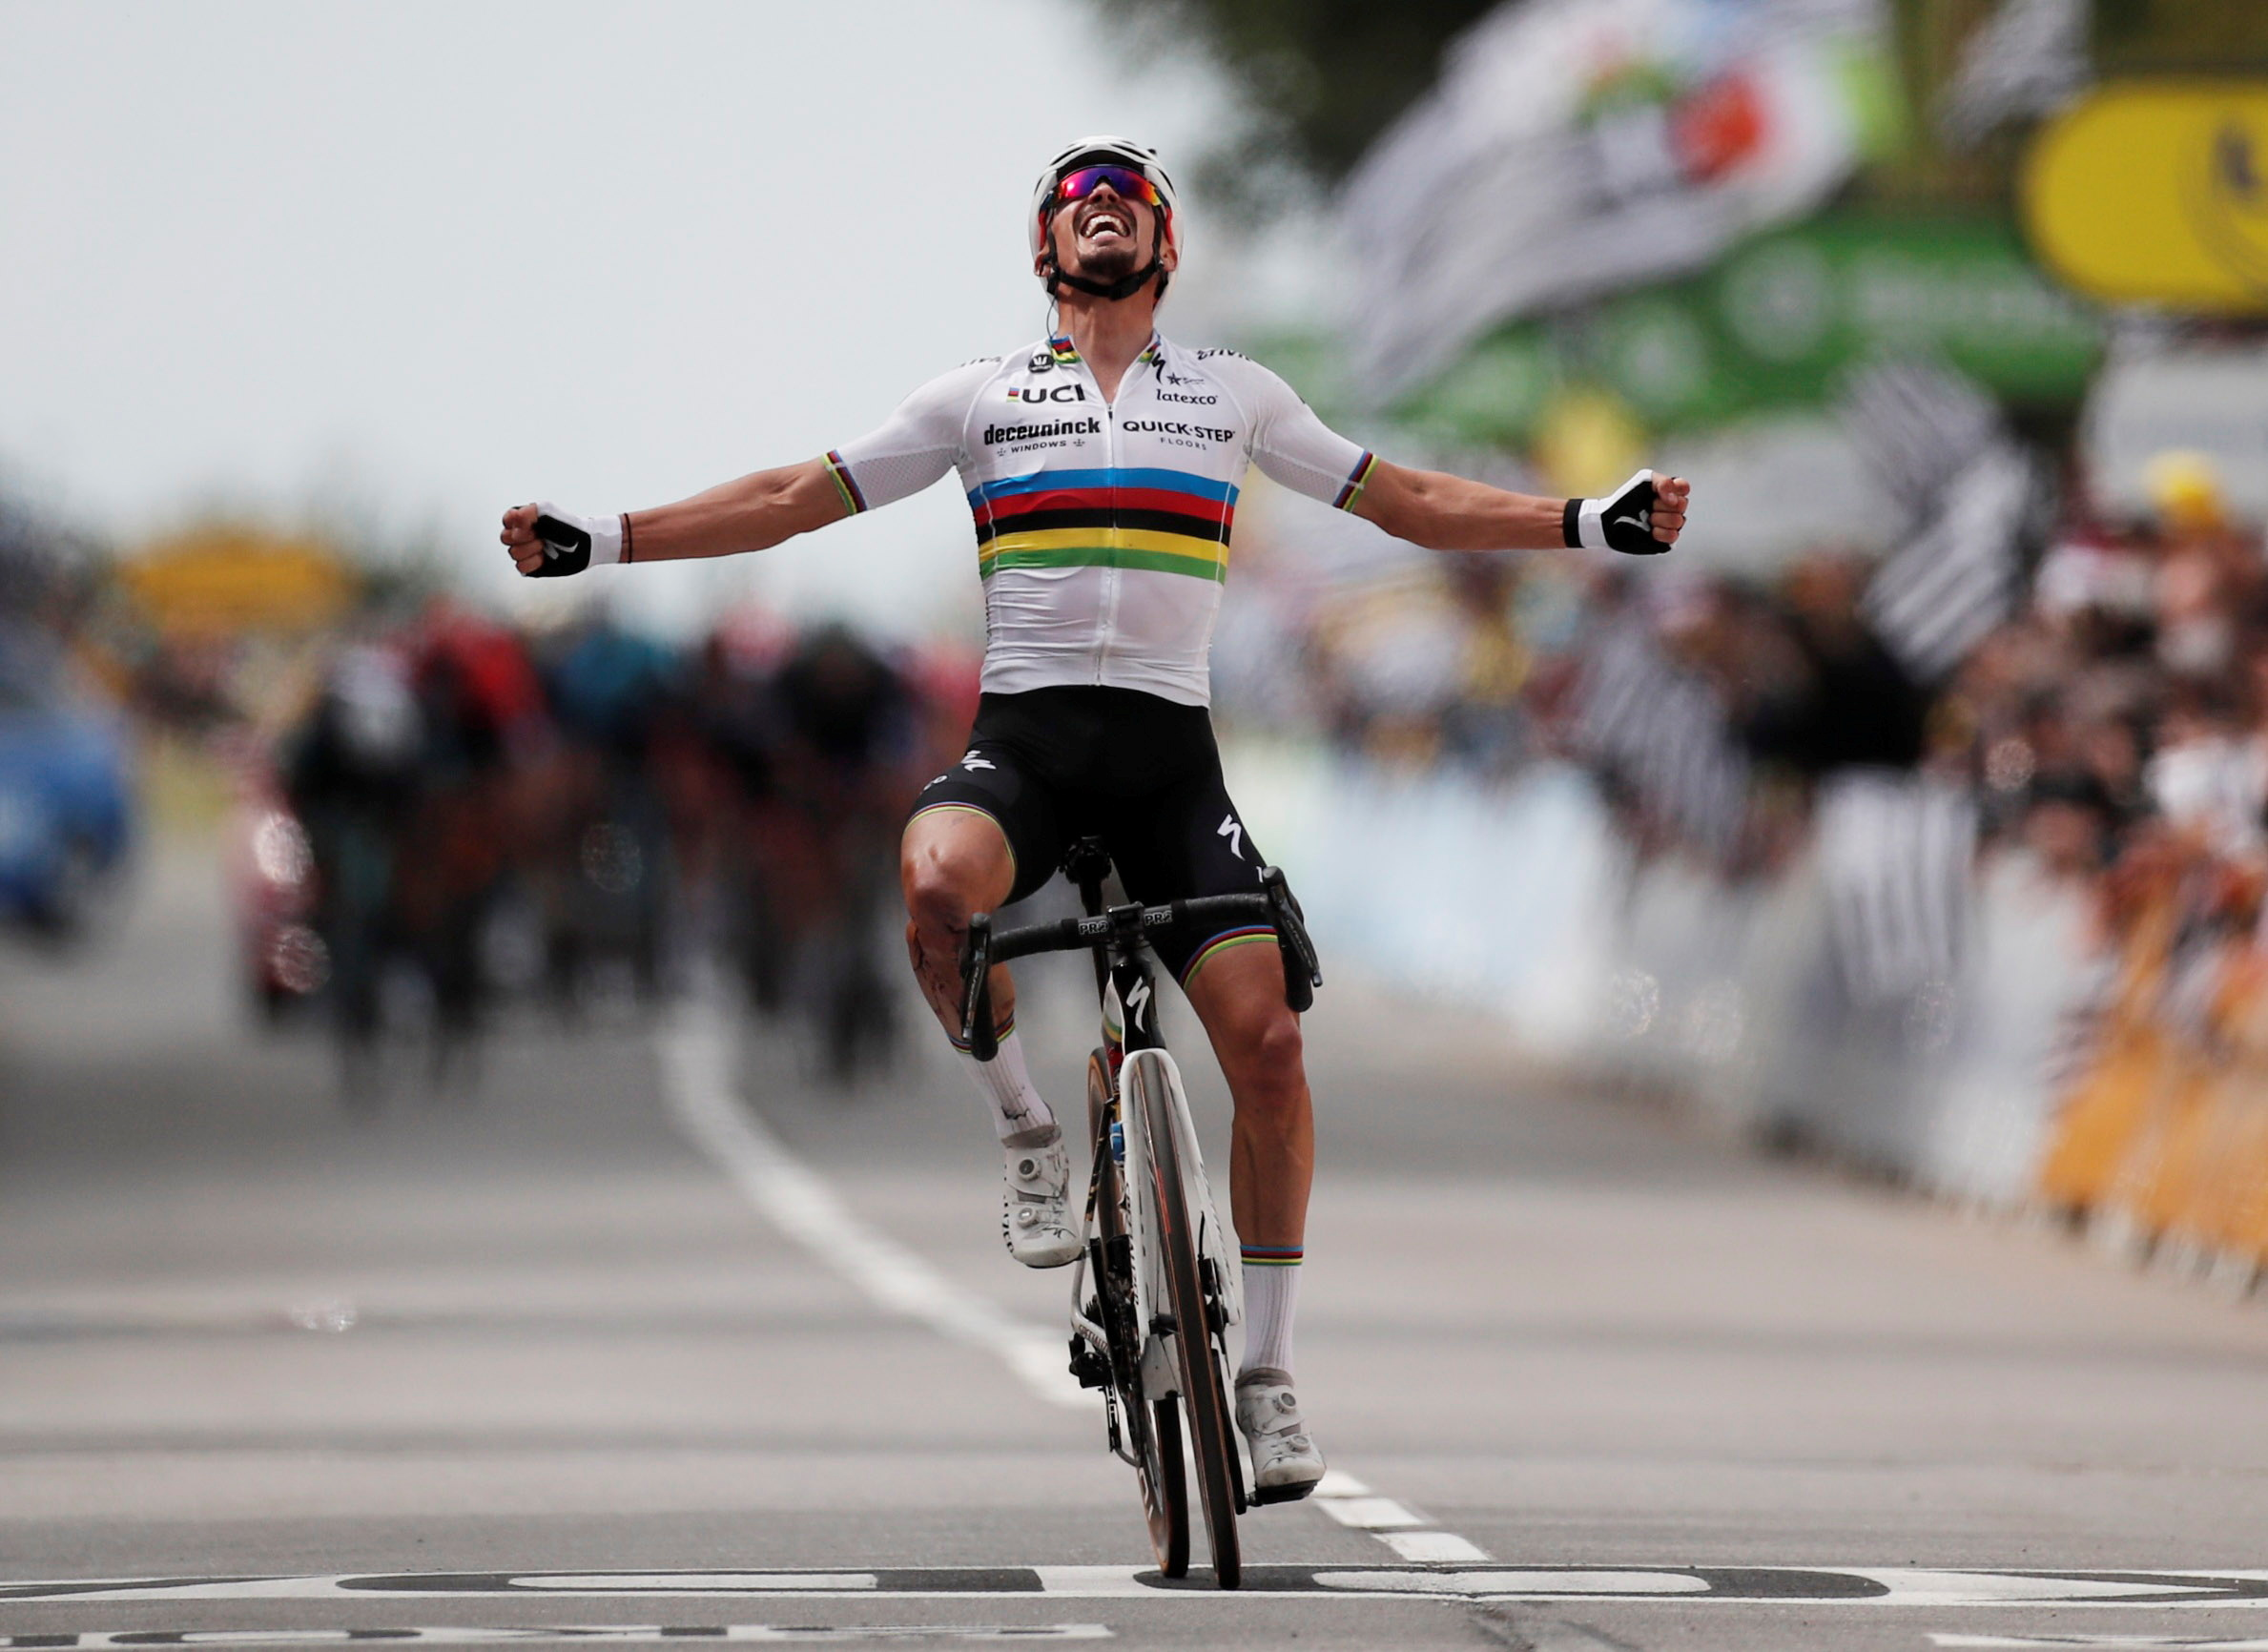 Cycling - Tour de France - Stage 1 - Brest to Landerneau - France - June 26, 2021 Deceuninck–Quick-Step rider Julian Alaphilippe of France celebrates as he crosses the finish line to win the first stage Pool via REUTERS/Benoit Tessier